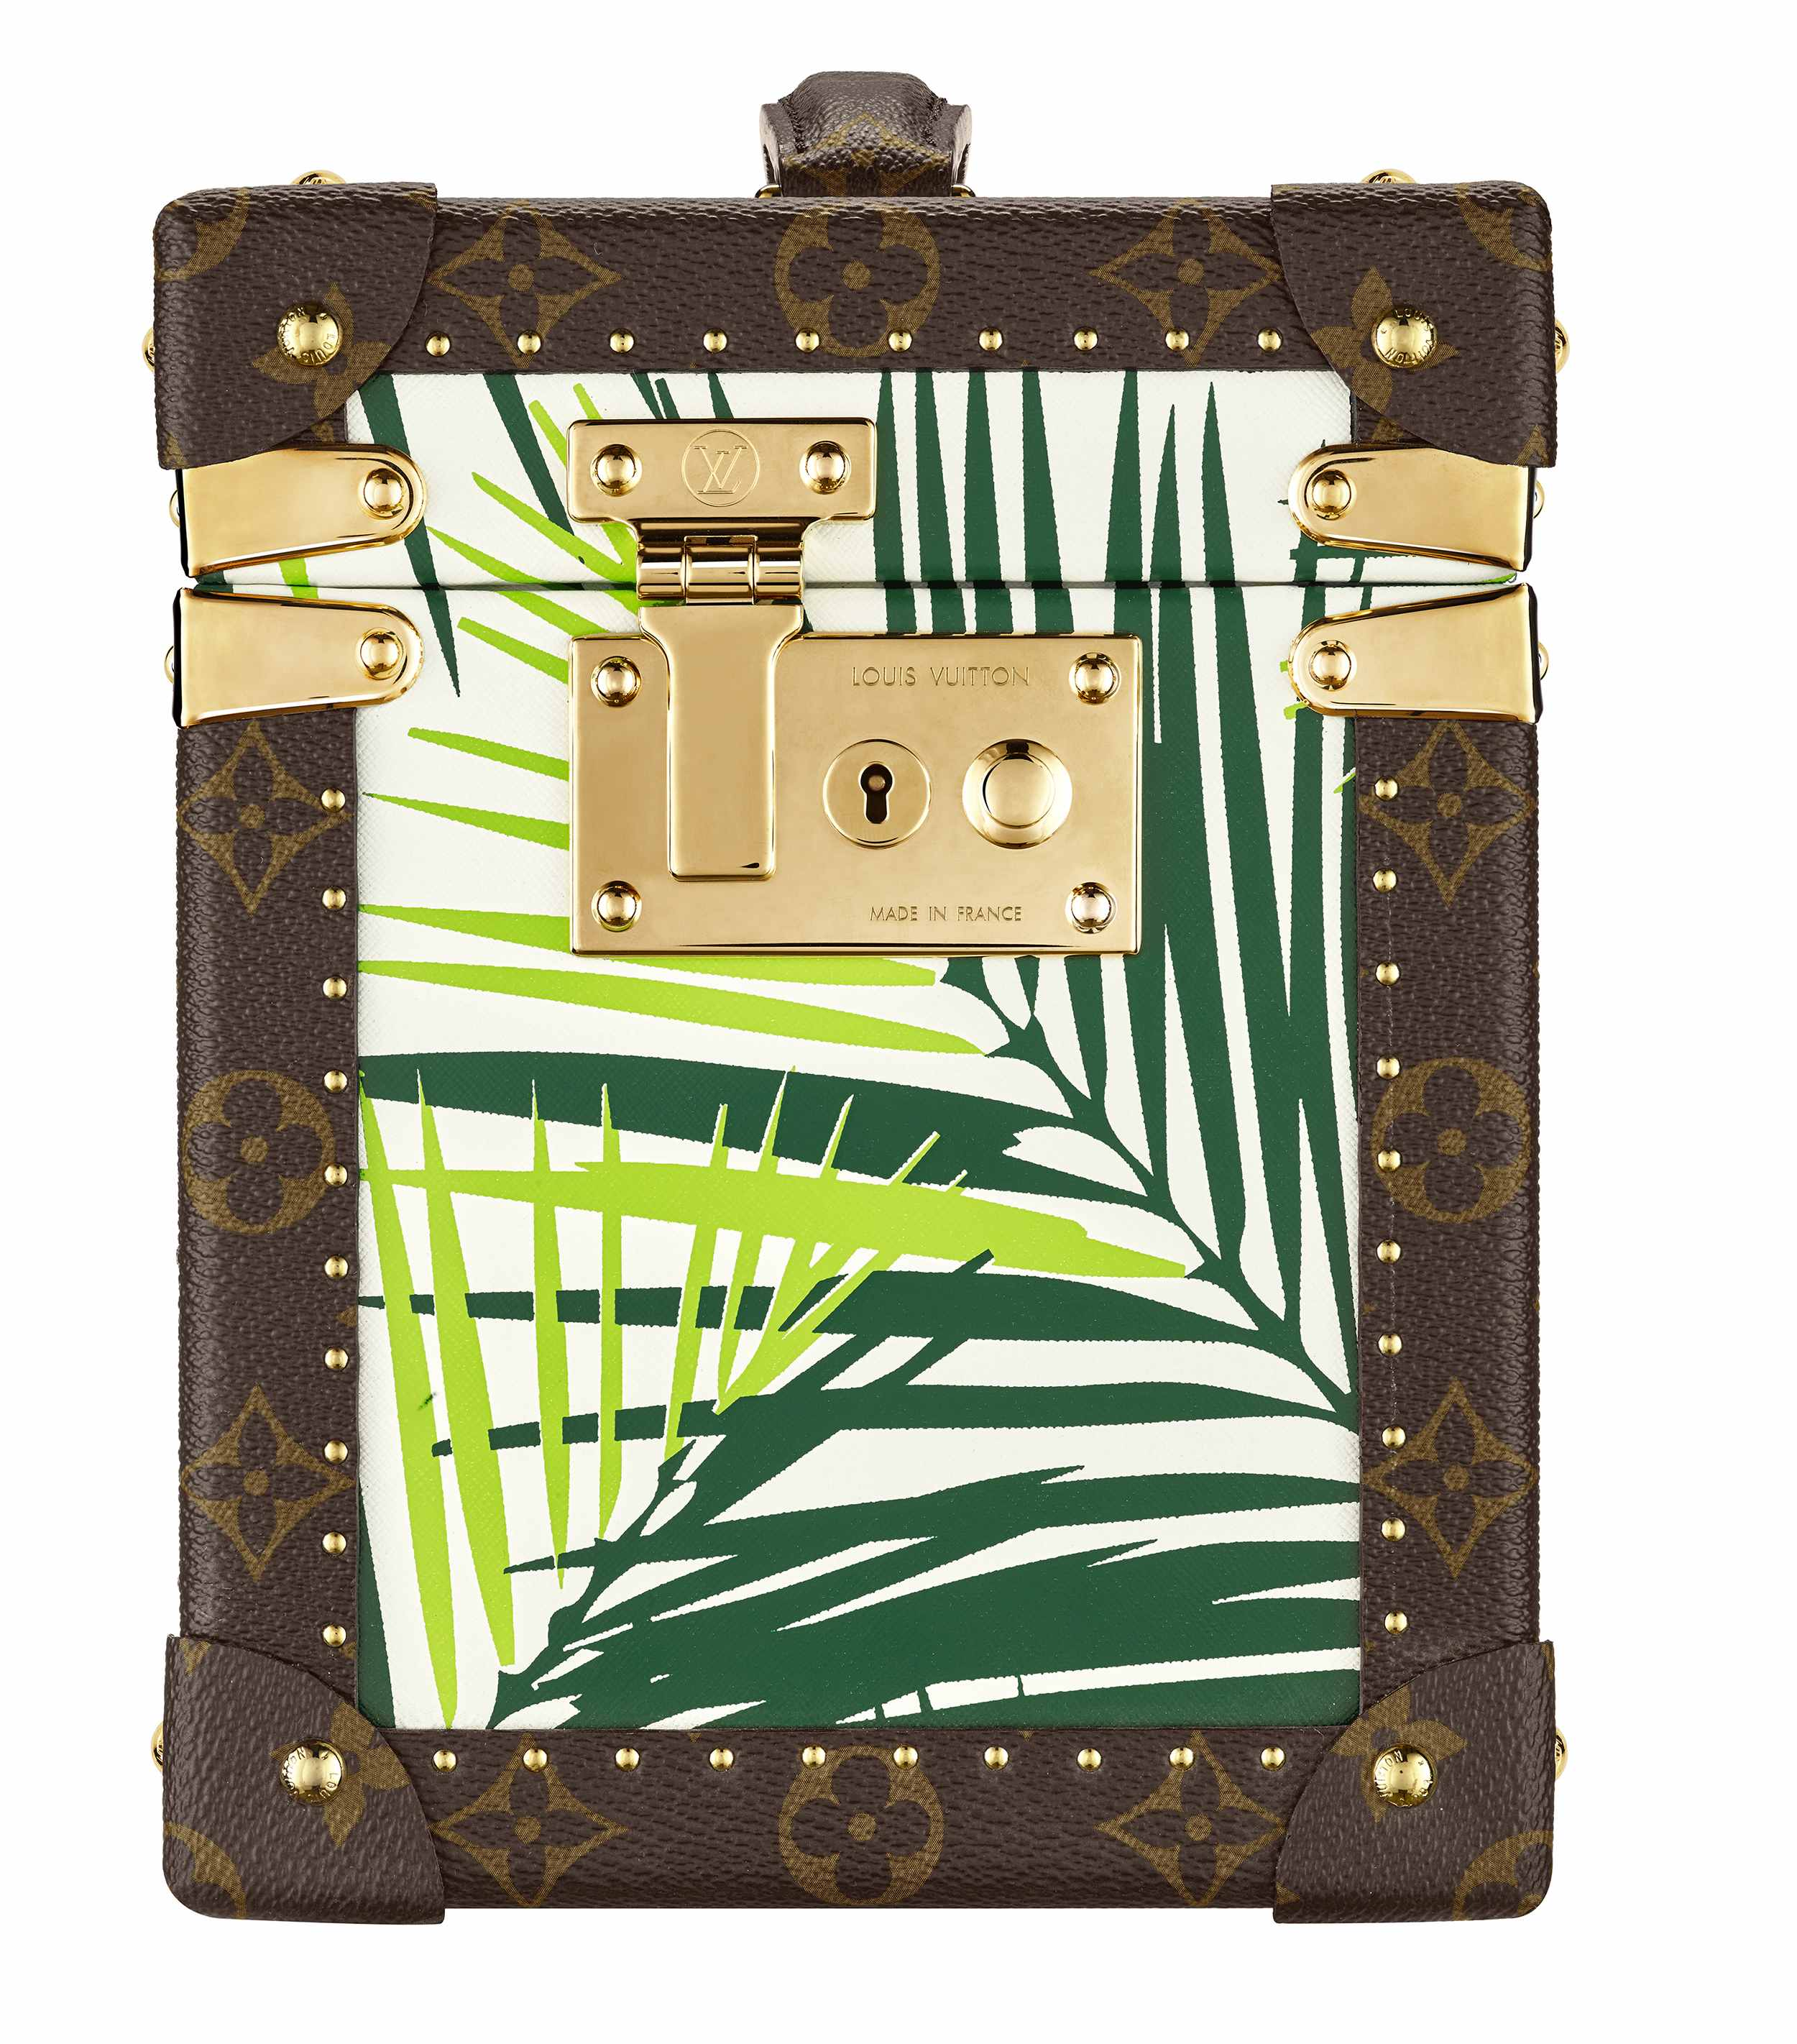 Louis Vuitton_Malle_Exo_Printed_Green_Palm_Trees_Face_AD